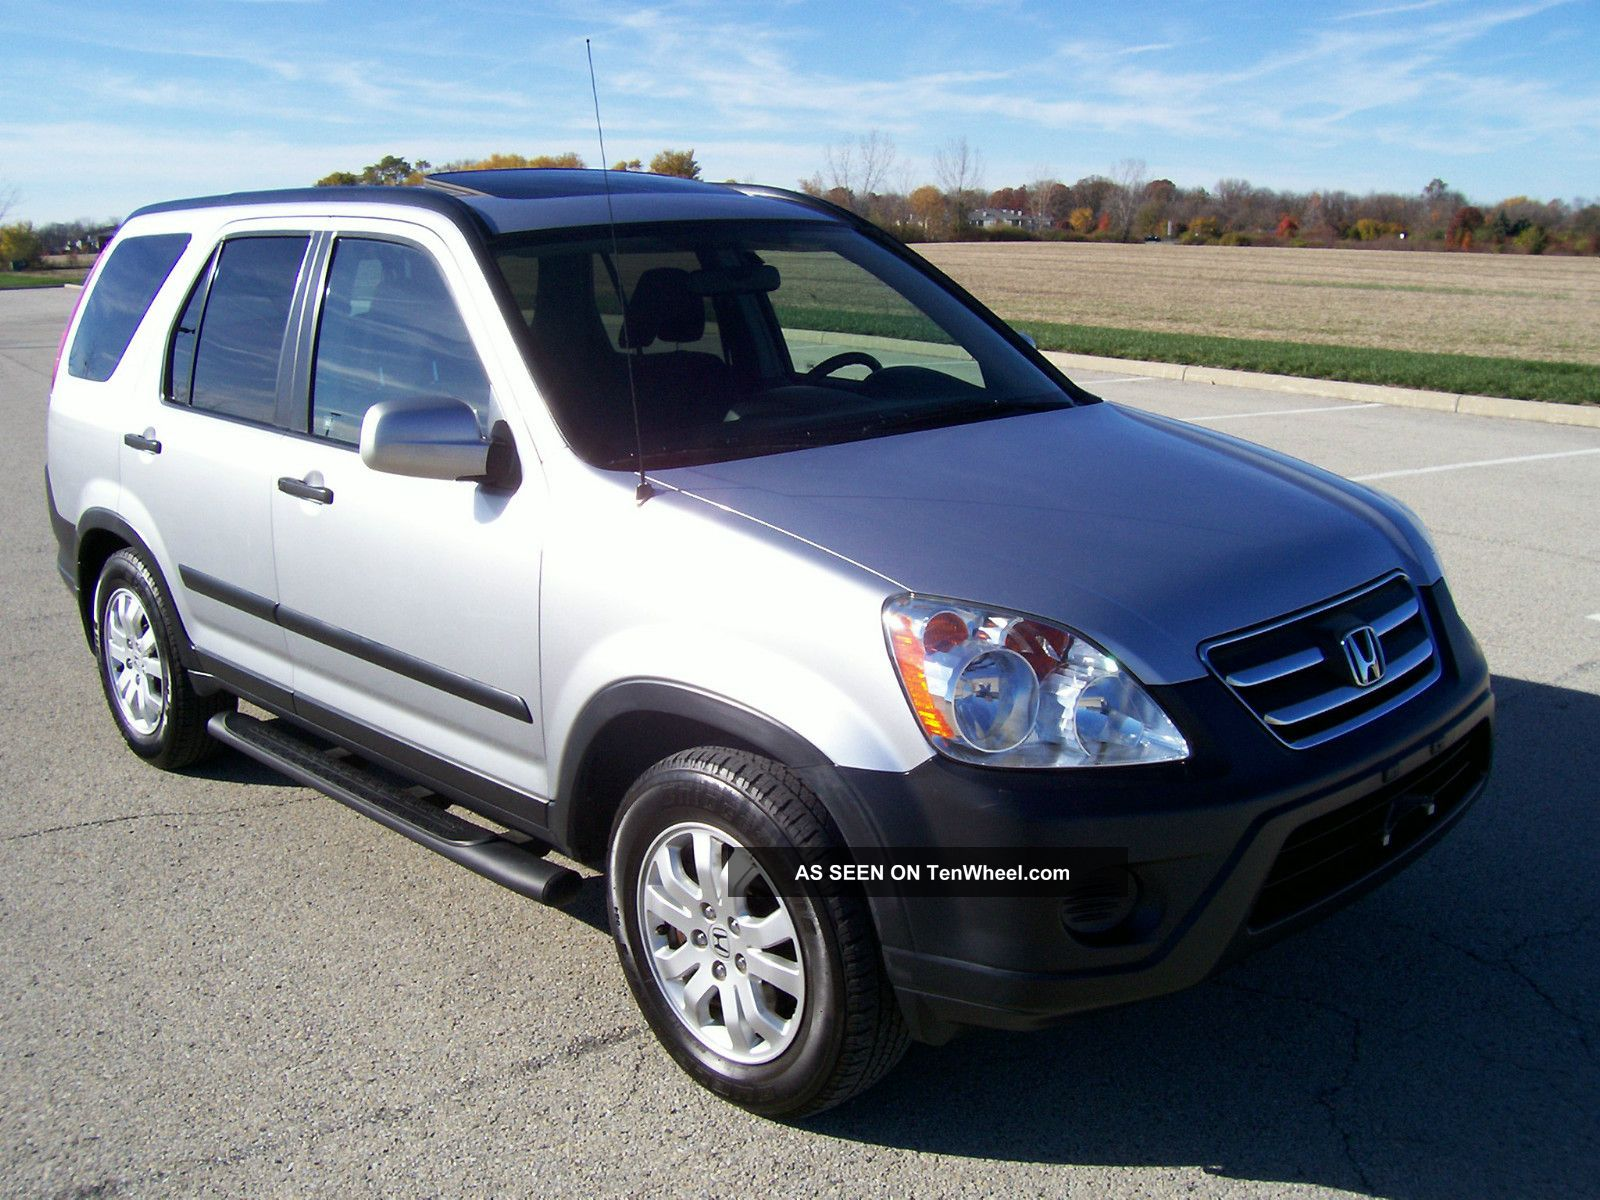 2006 Honda Cr V Ex 4wd Loaded Ex Awd Crv Make Offer CR V photo  #1F6CAC